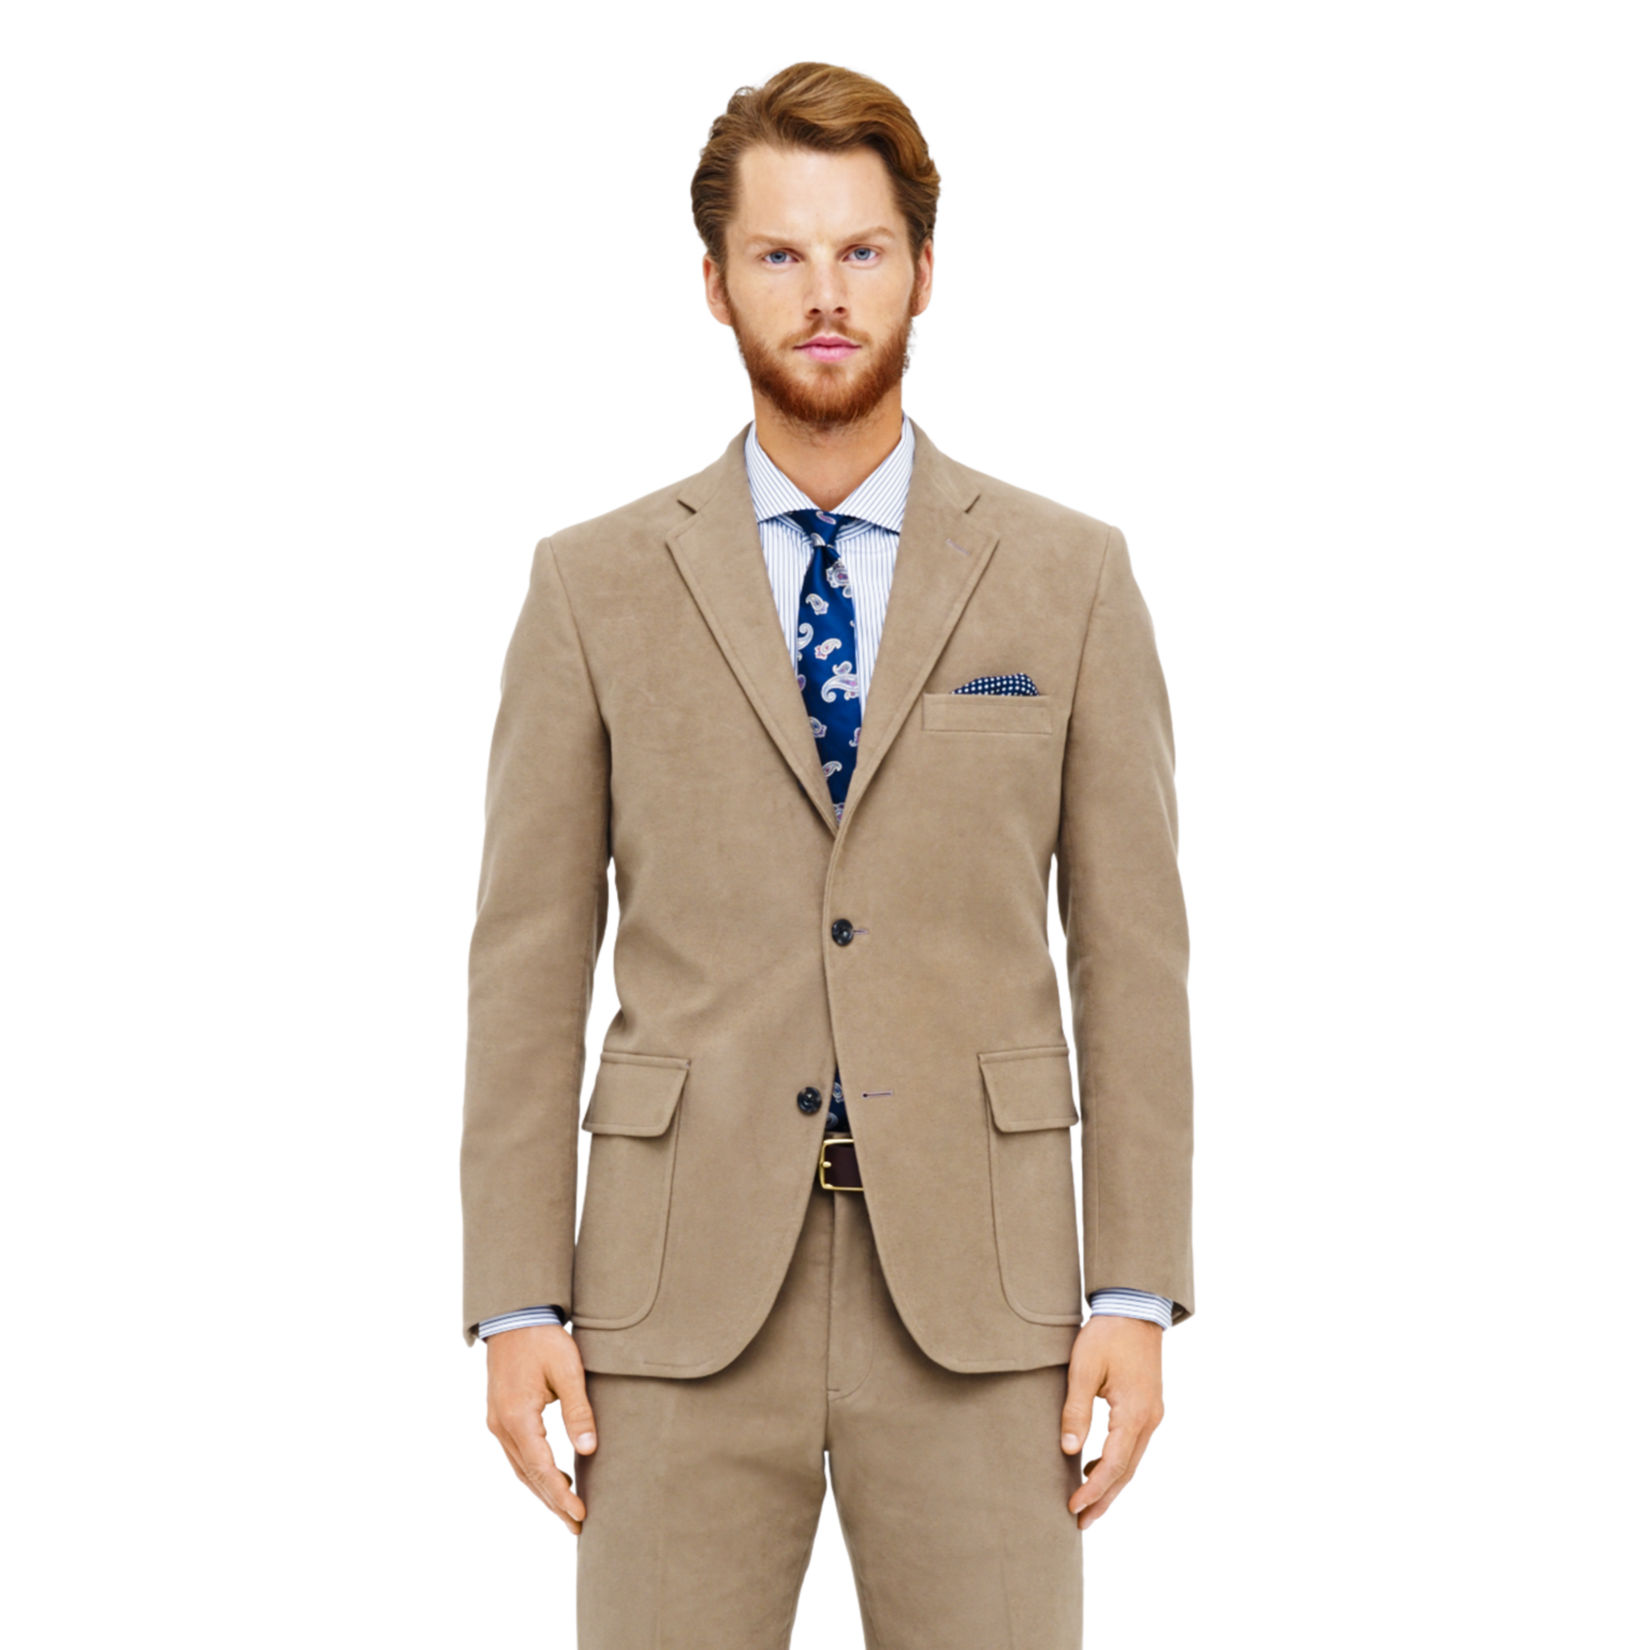 Men   All Sale   Made In the USA Suit Jacket   Club Monaco